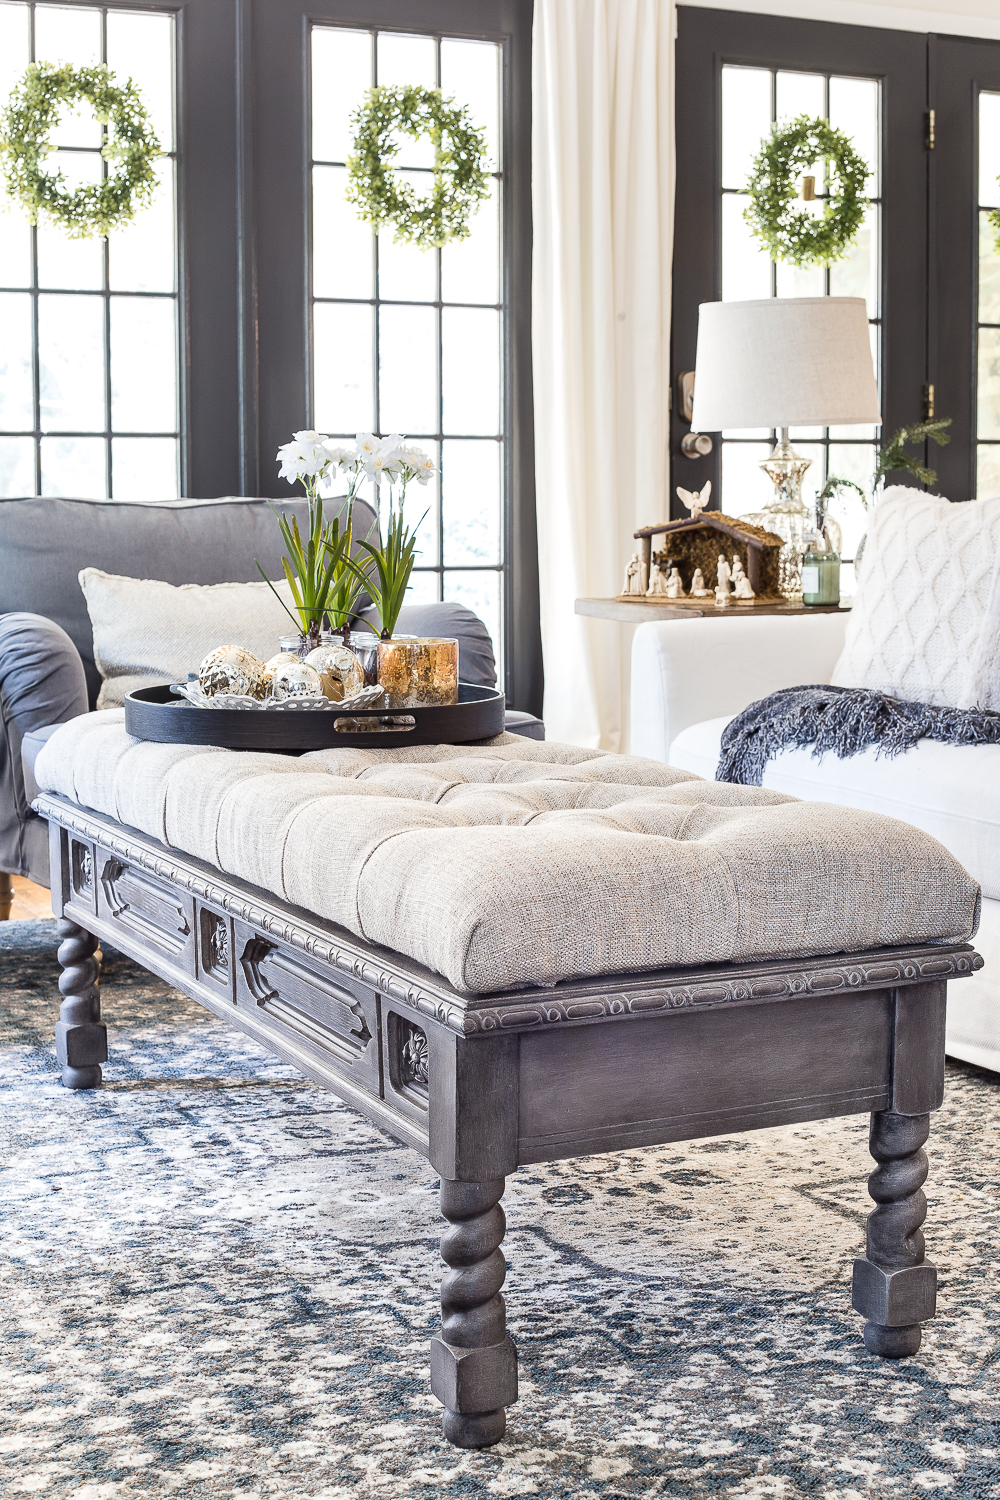 Fantastic Farmhouse Thrift Store Makeovers The Cottage Market